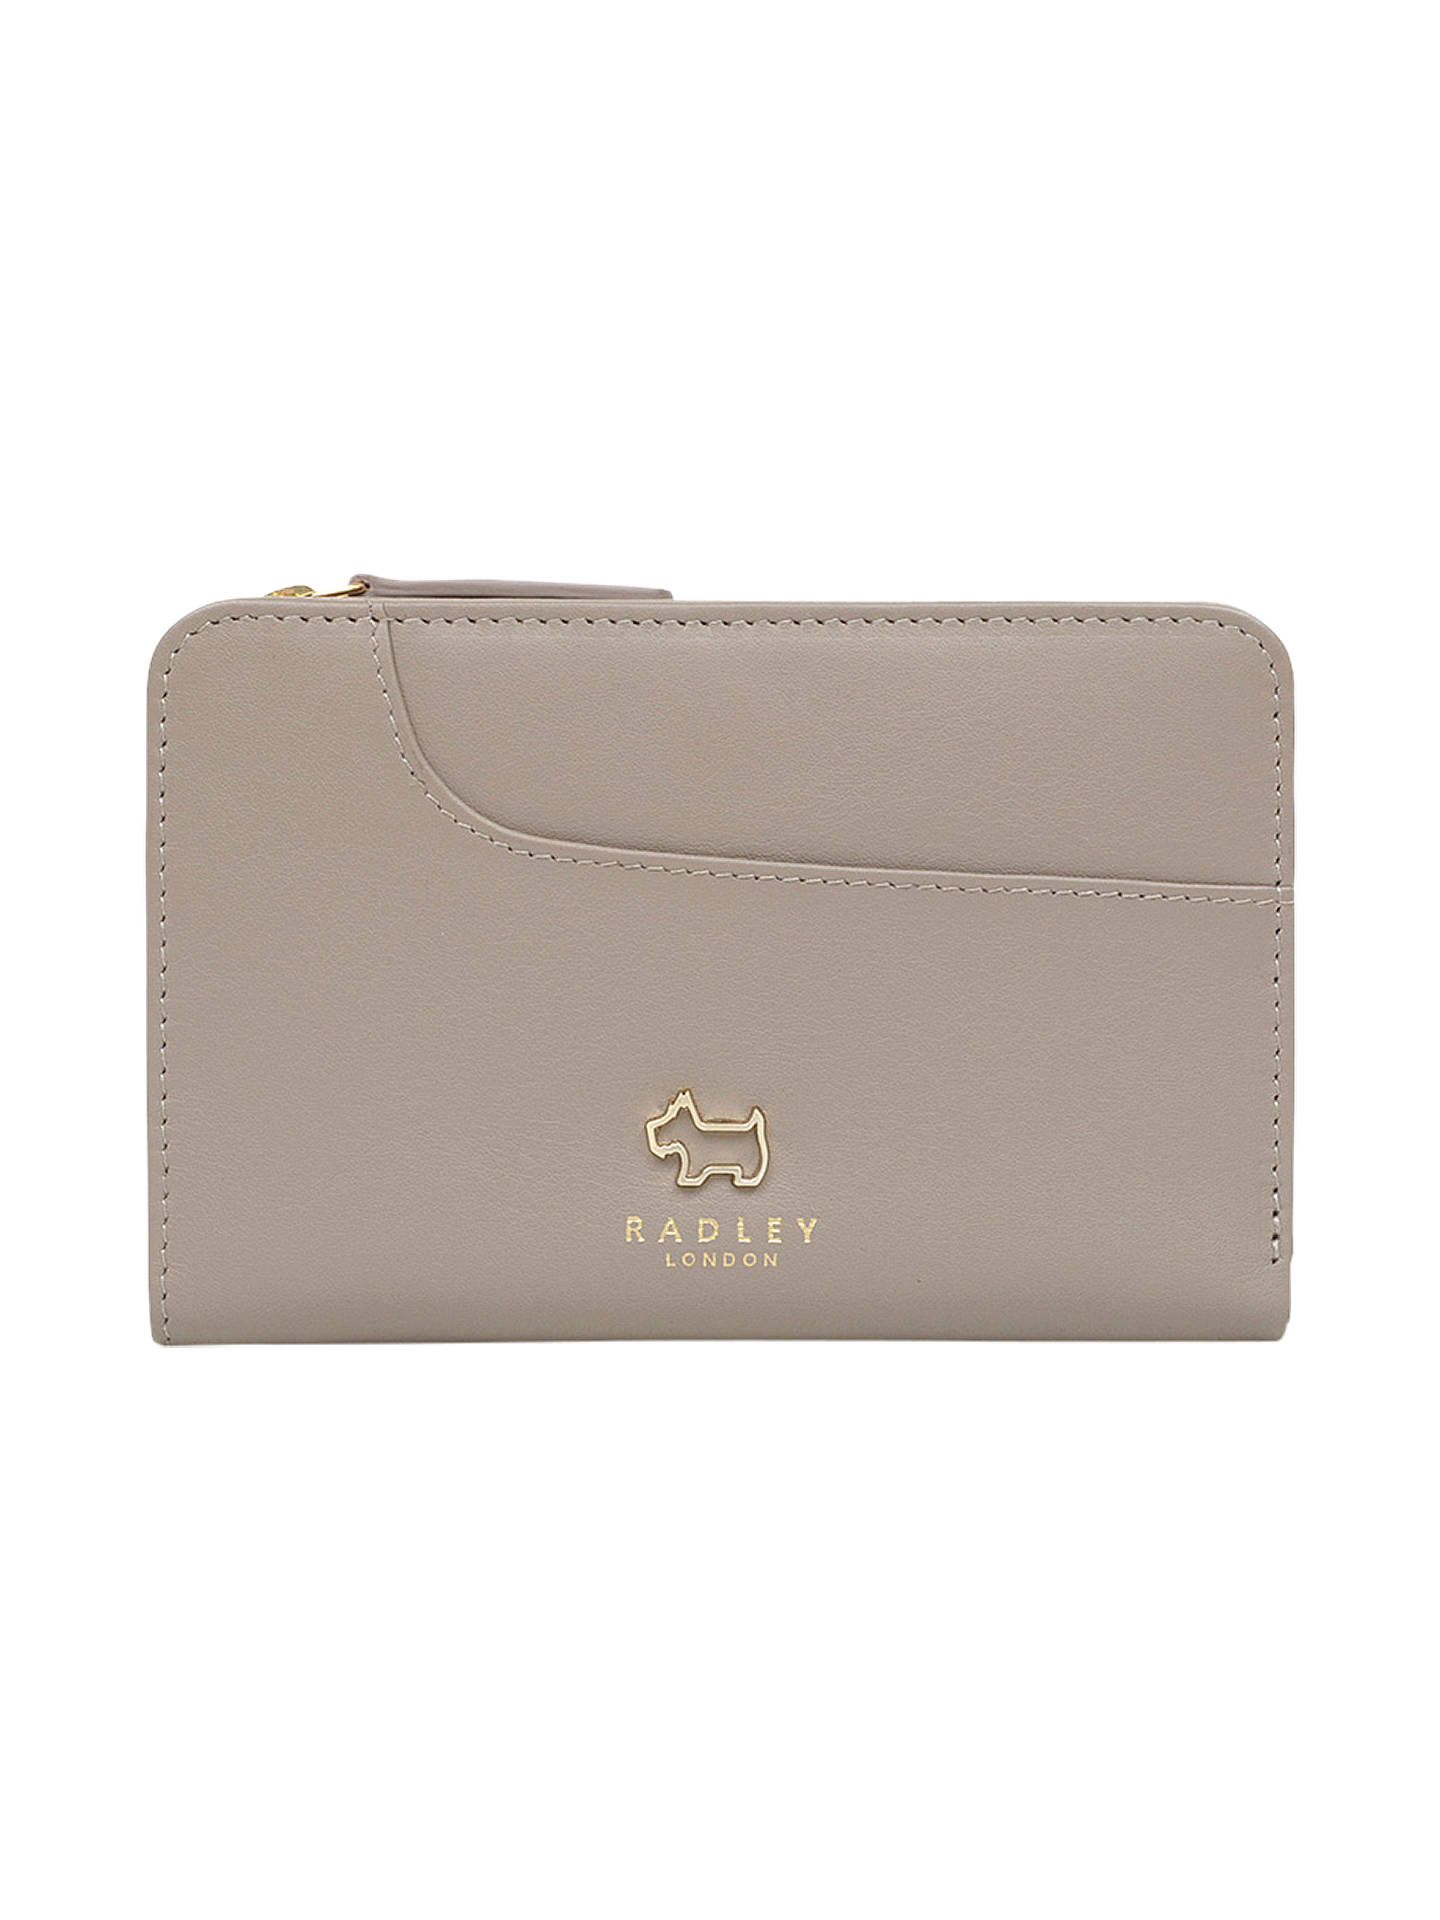 BuyRadley Pockets Leather Medium Zip-Top Purse, Brown Online at johnlewis.com